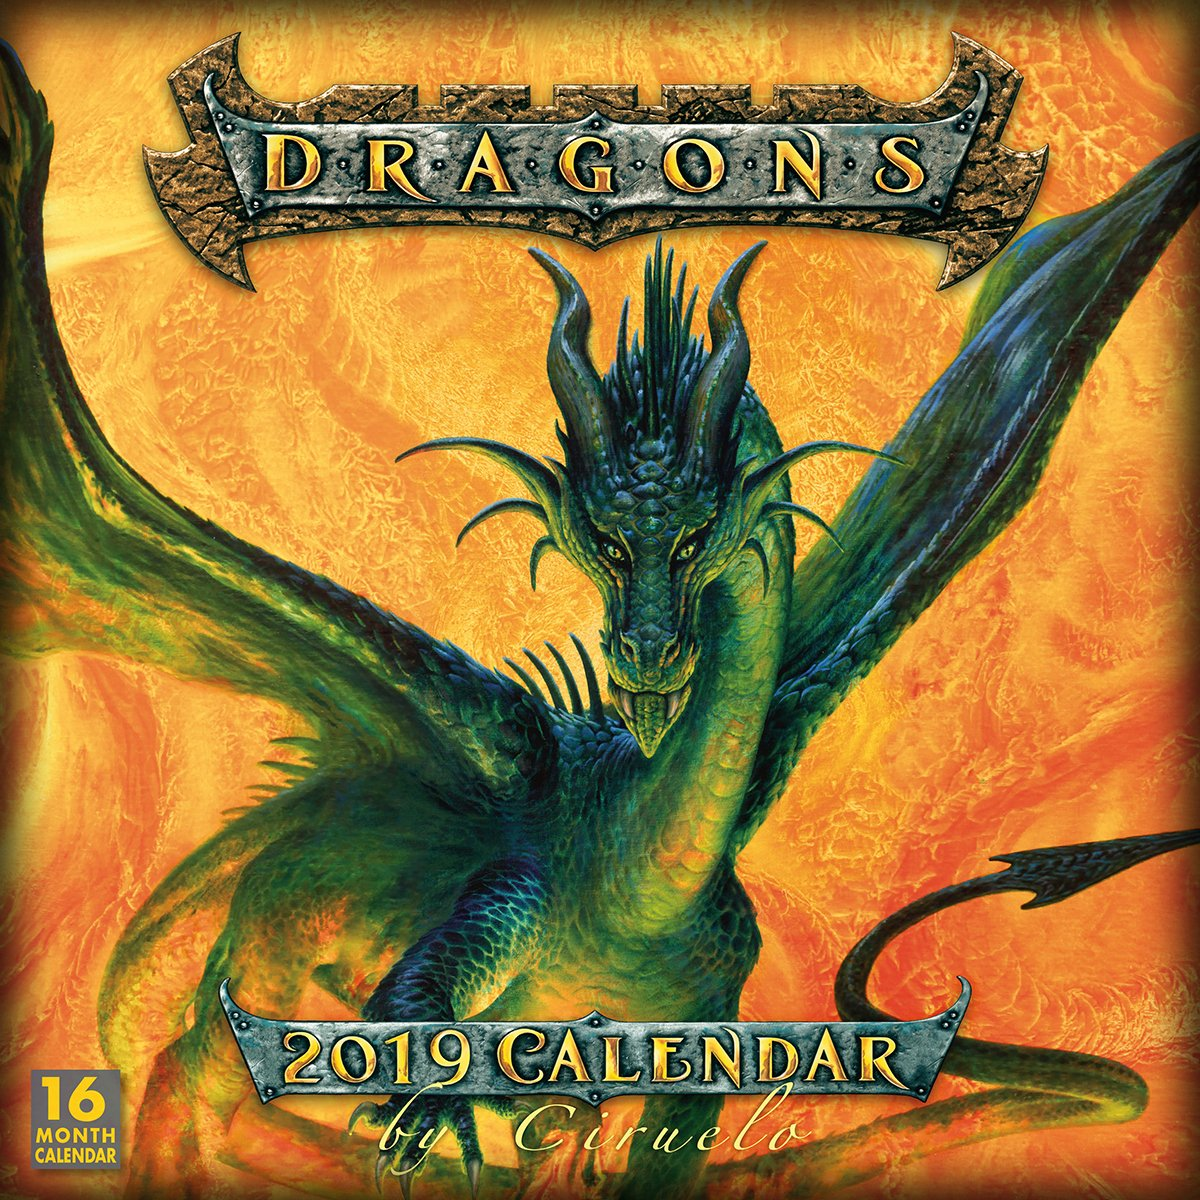 dragons by ciruelo 2019 wall calendar